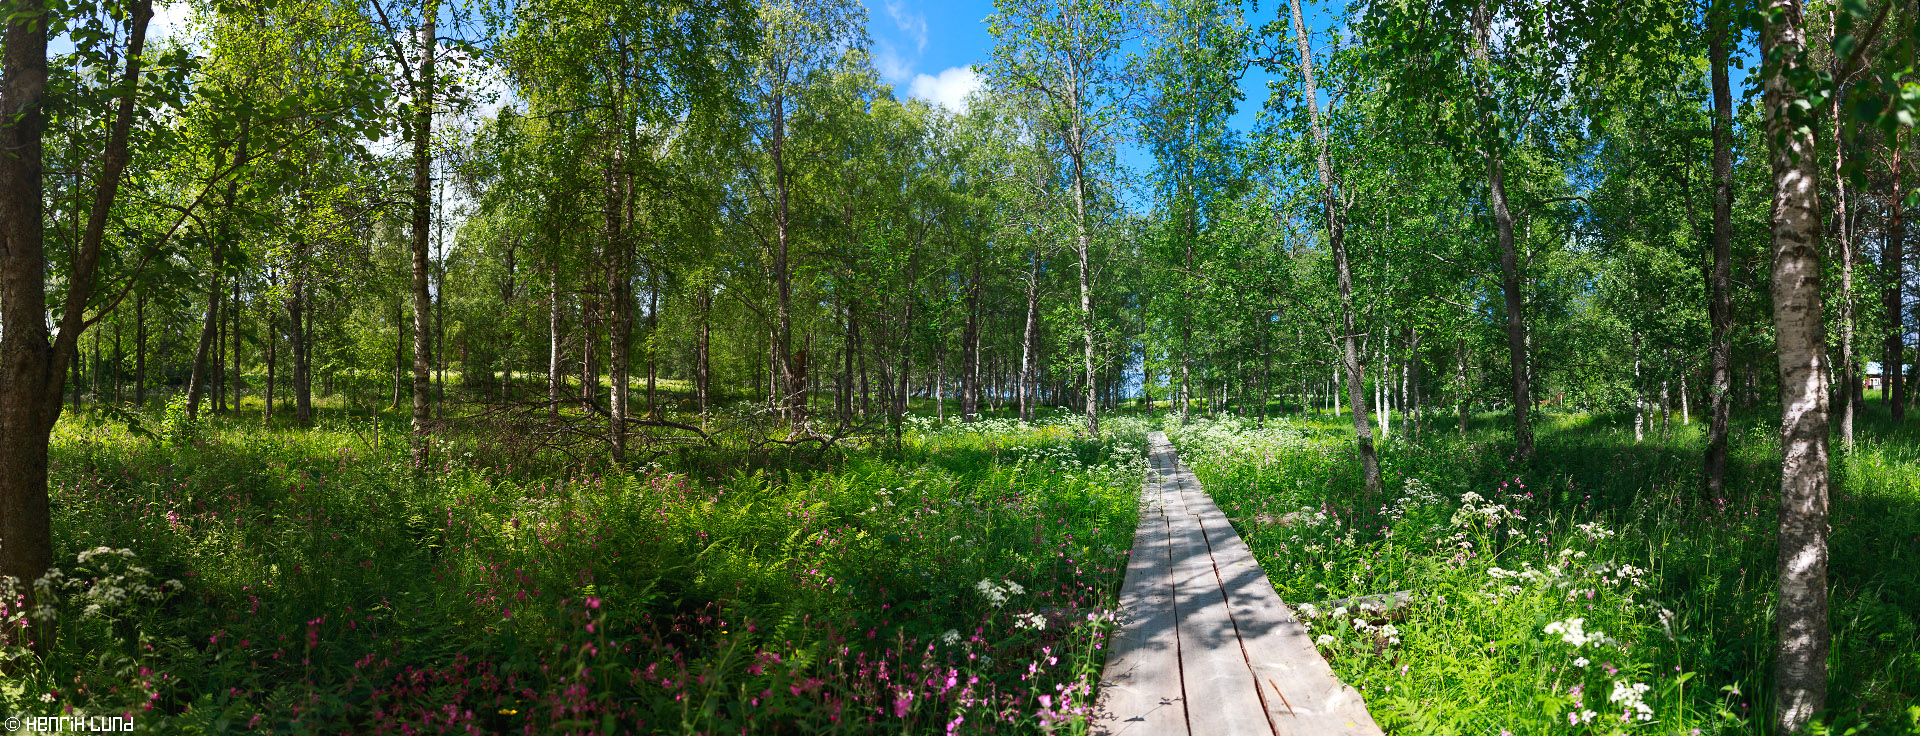 Panoramic view over the paht to the 'Kalmisto' (orthodox burial ground) in Kokonniemi in Ilomantsi. June 2015.